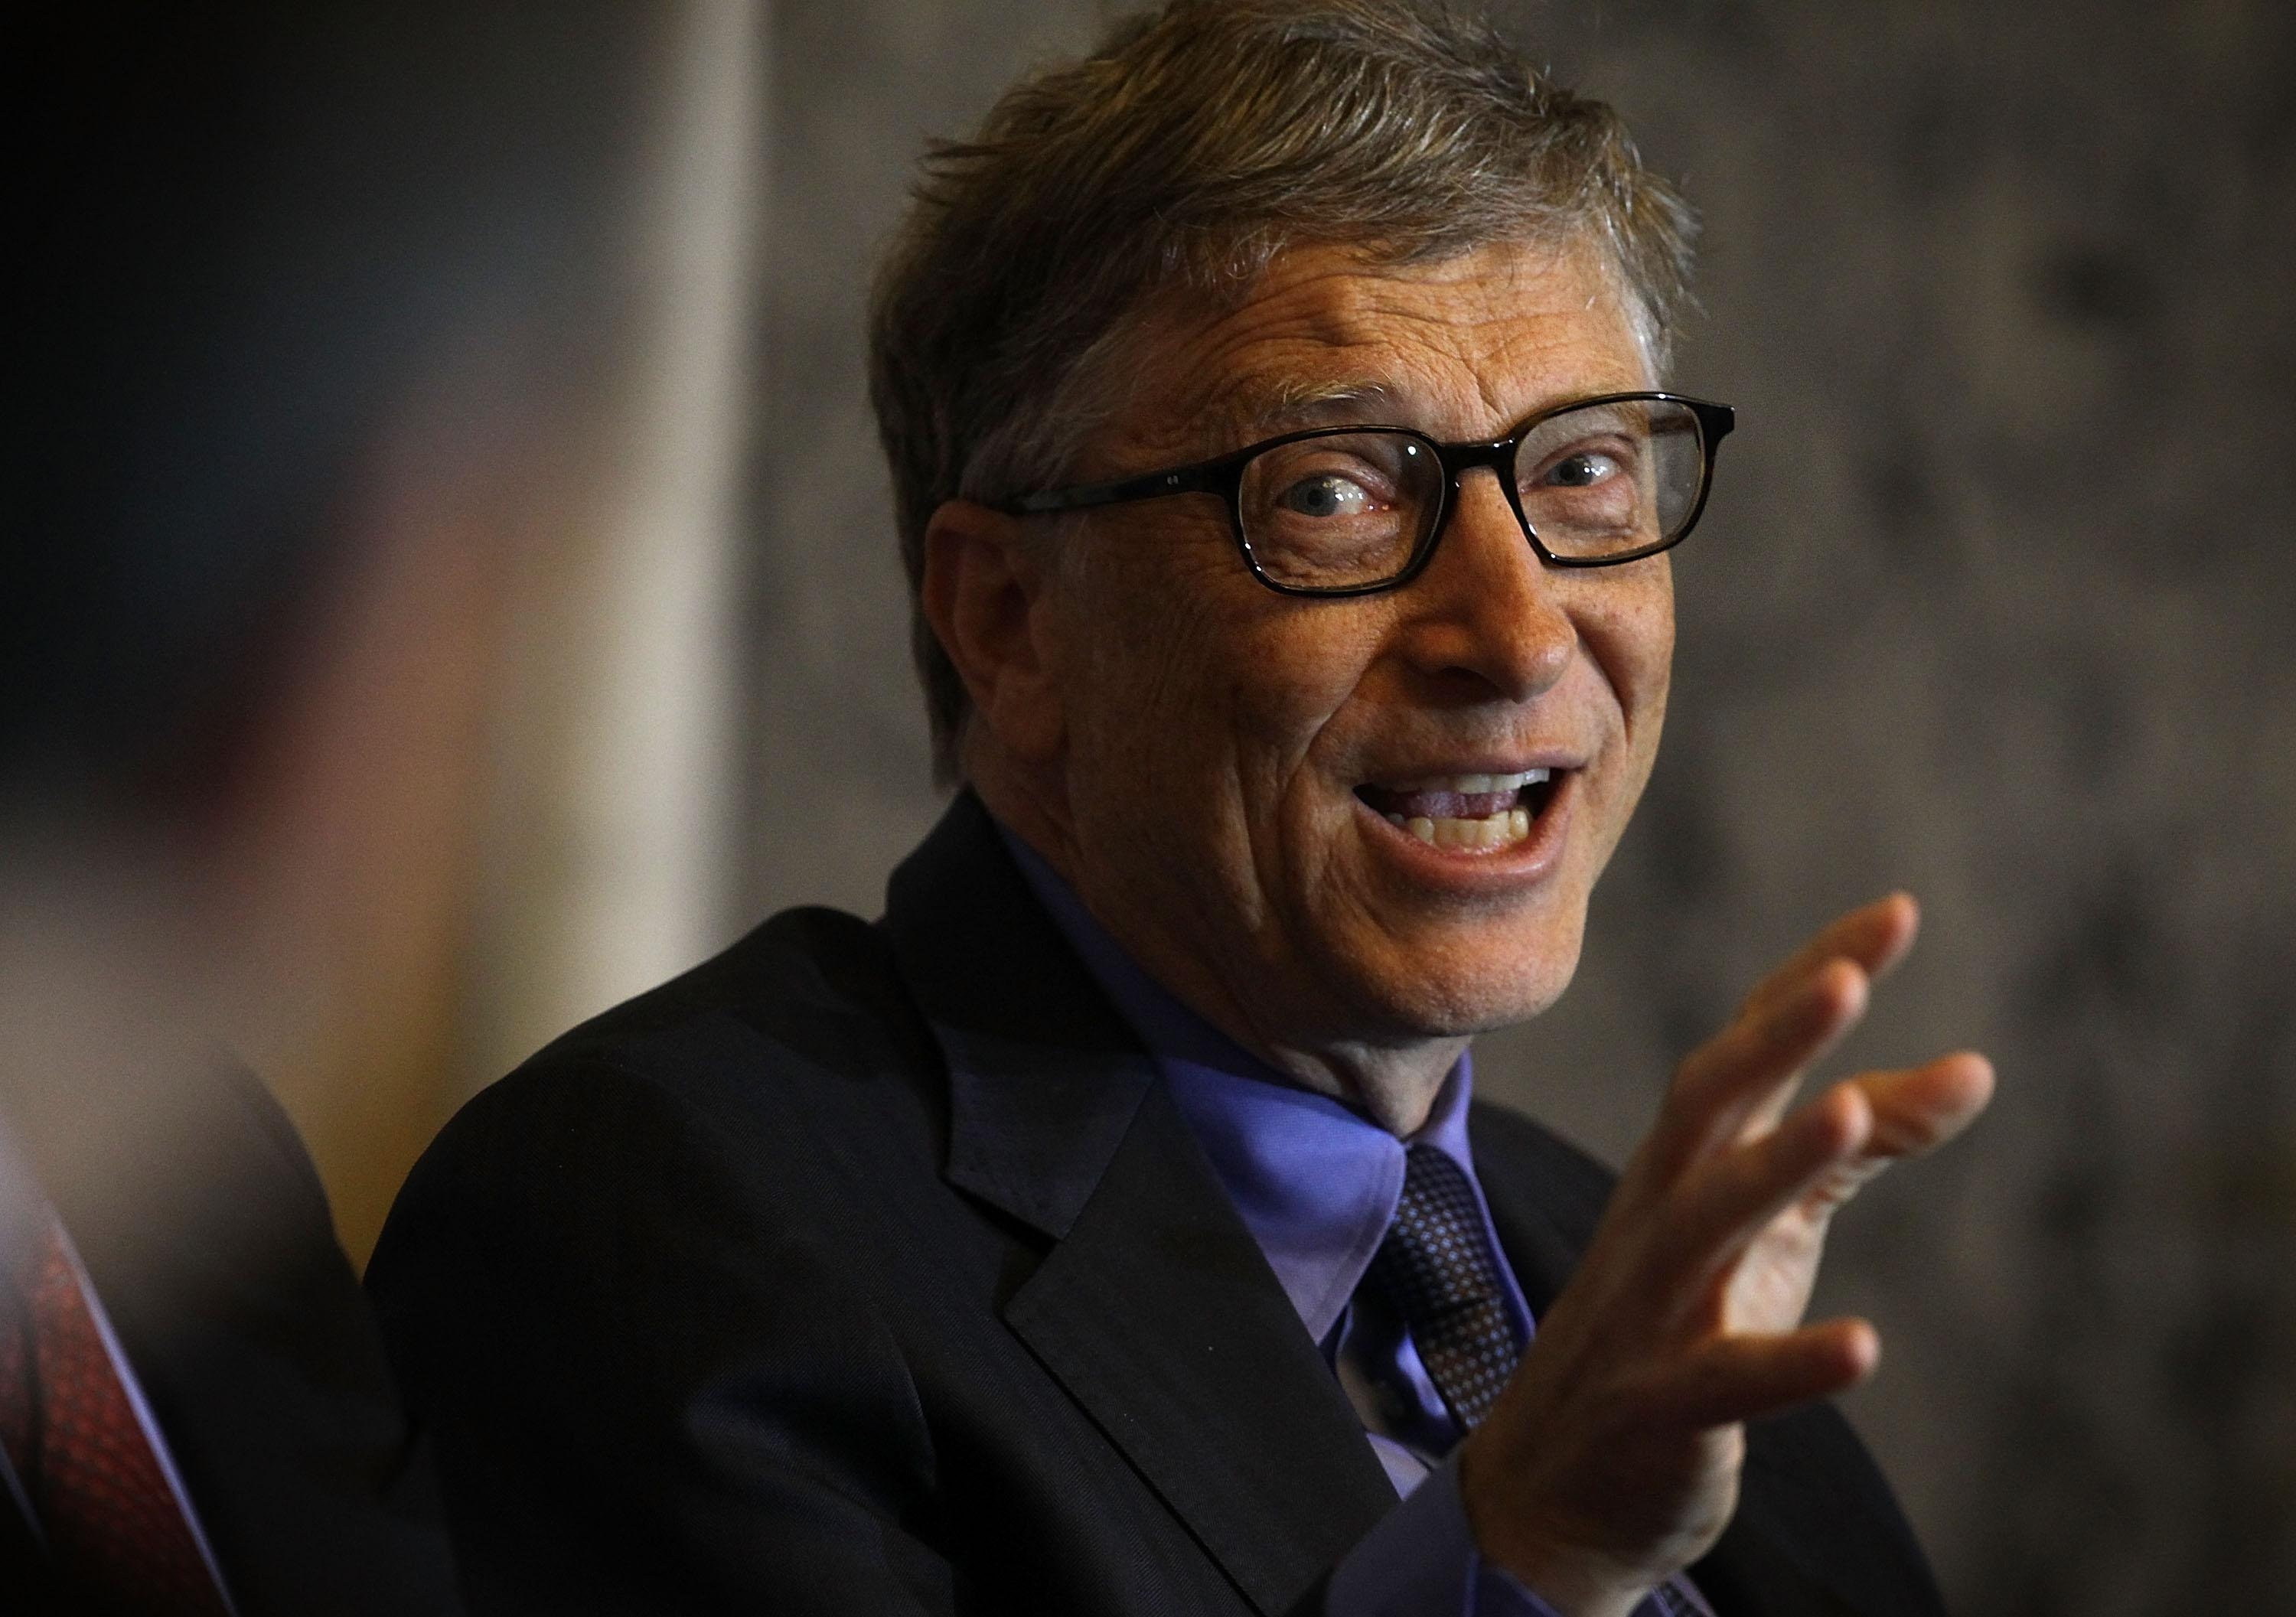 Bill Gates on Donald Trump 'Doesn't Know What HIV Is'